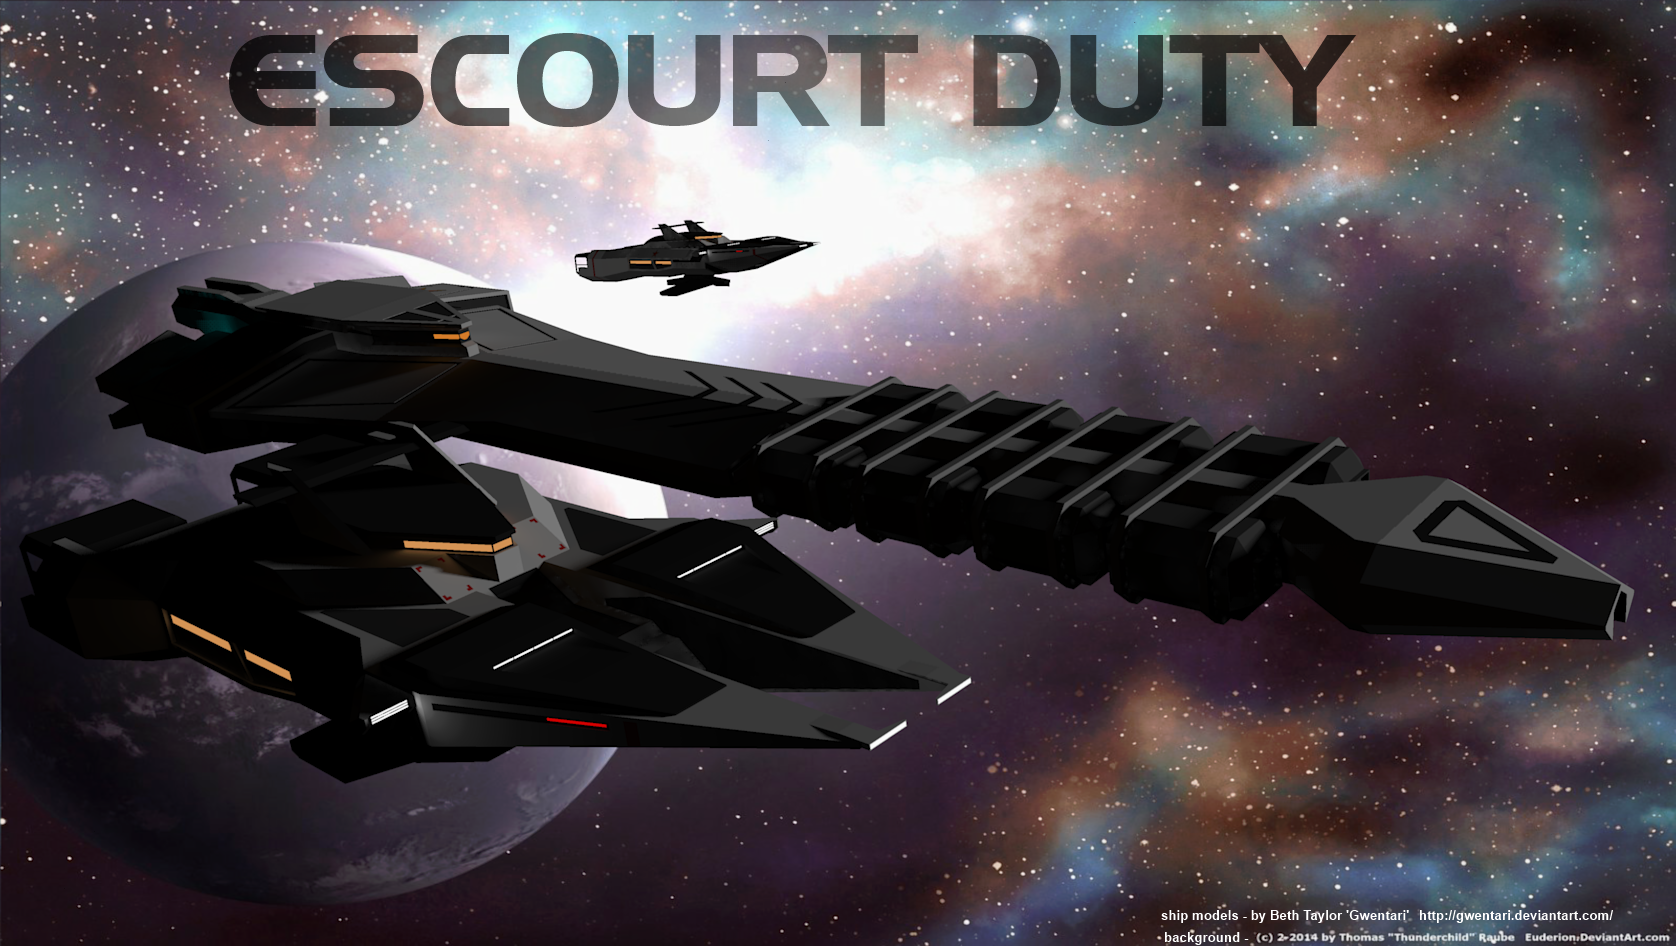 Escourt Duty by Gwentari